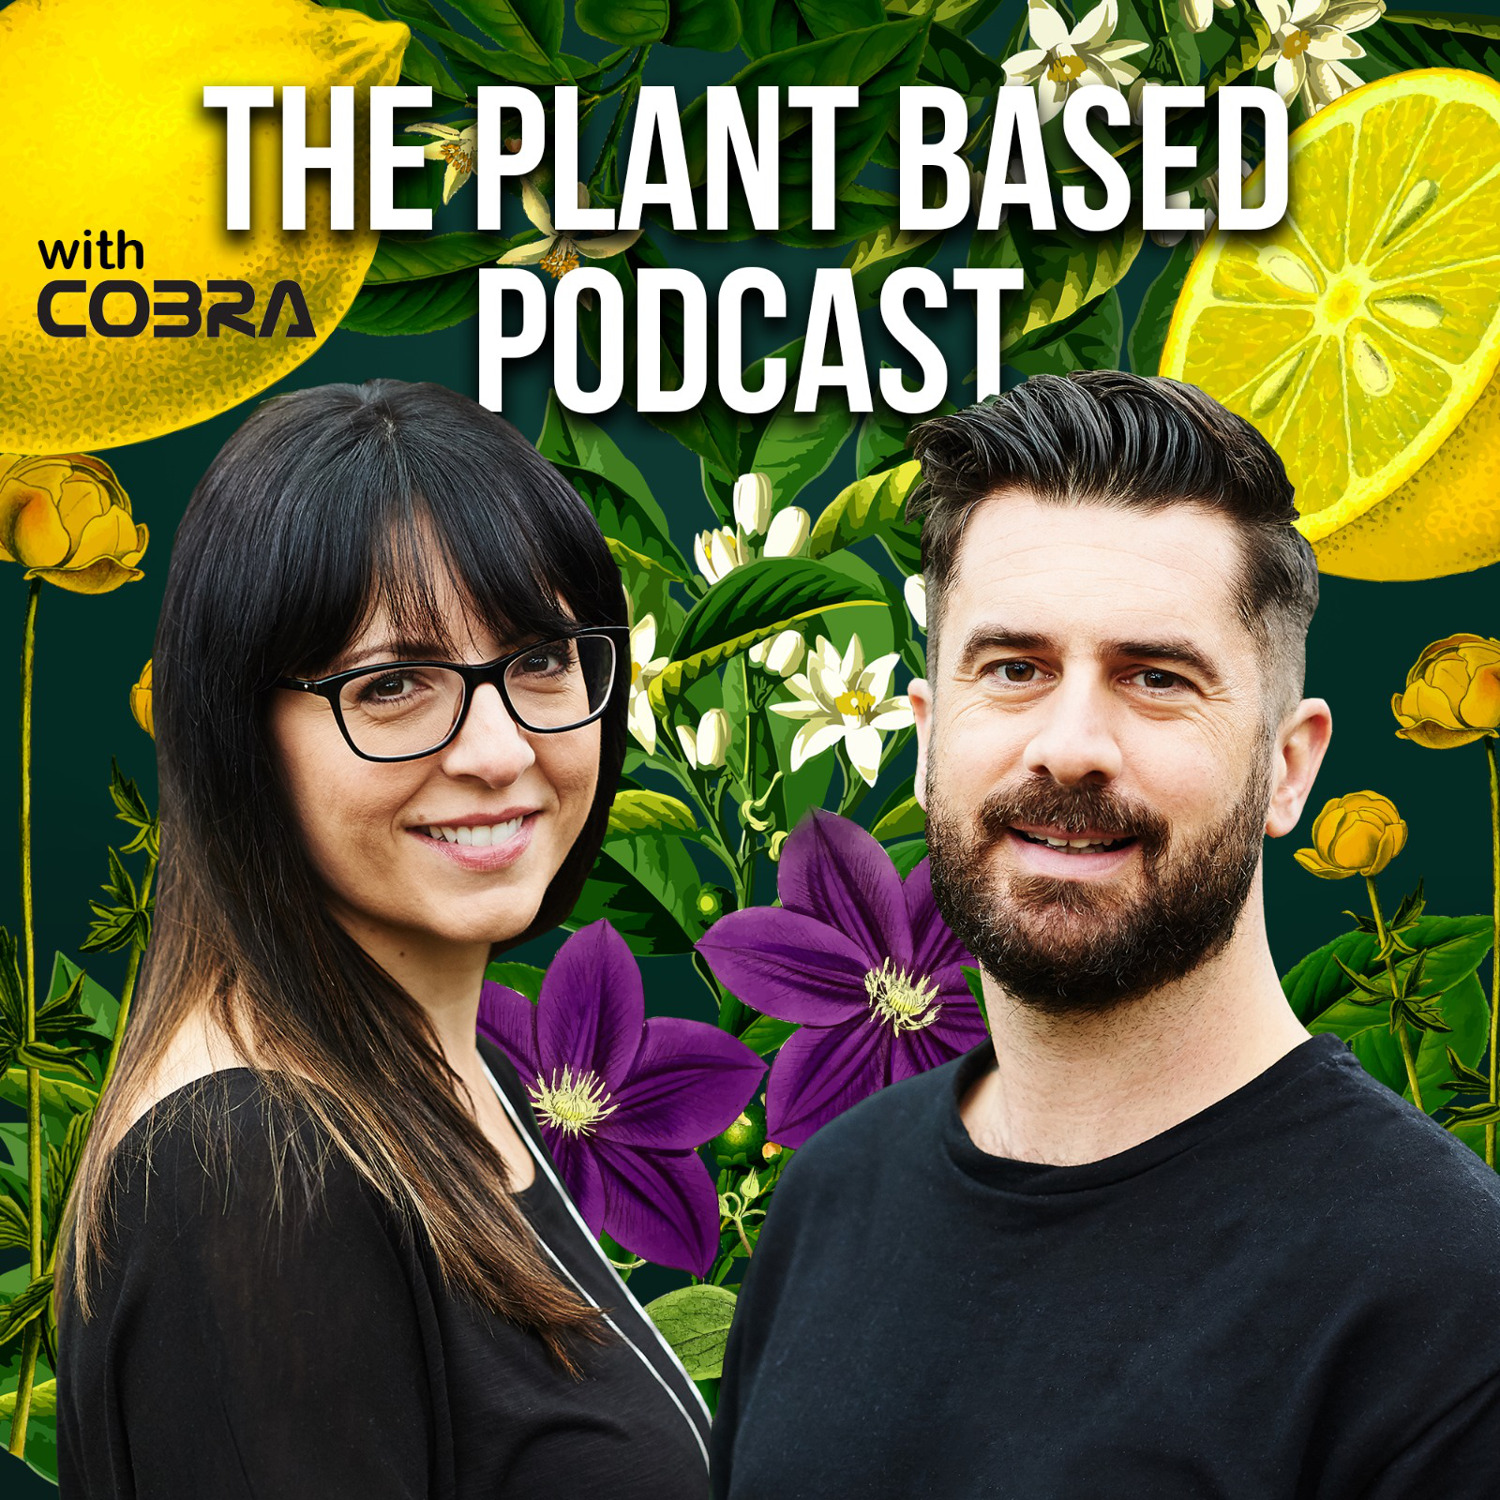 The Plant Based Podcast S4 Episode Eleven - The reality of a plant-based diet with Chris Bavin!